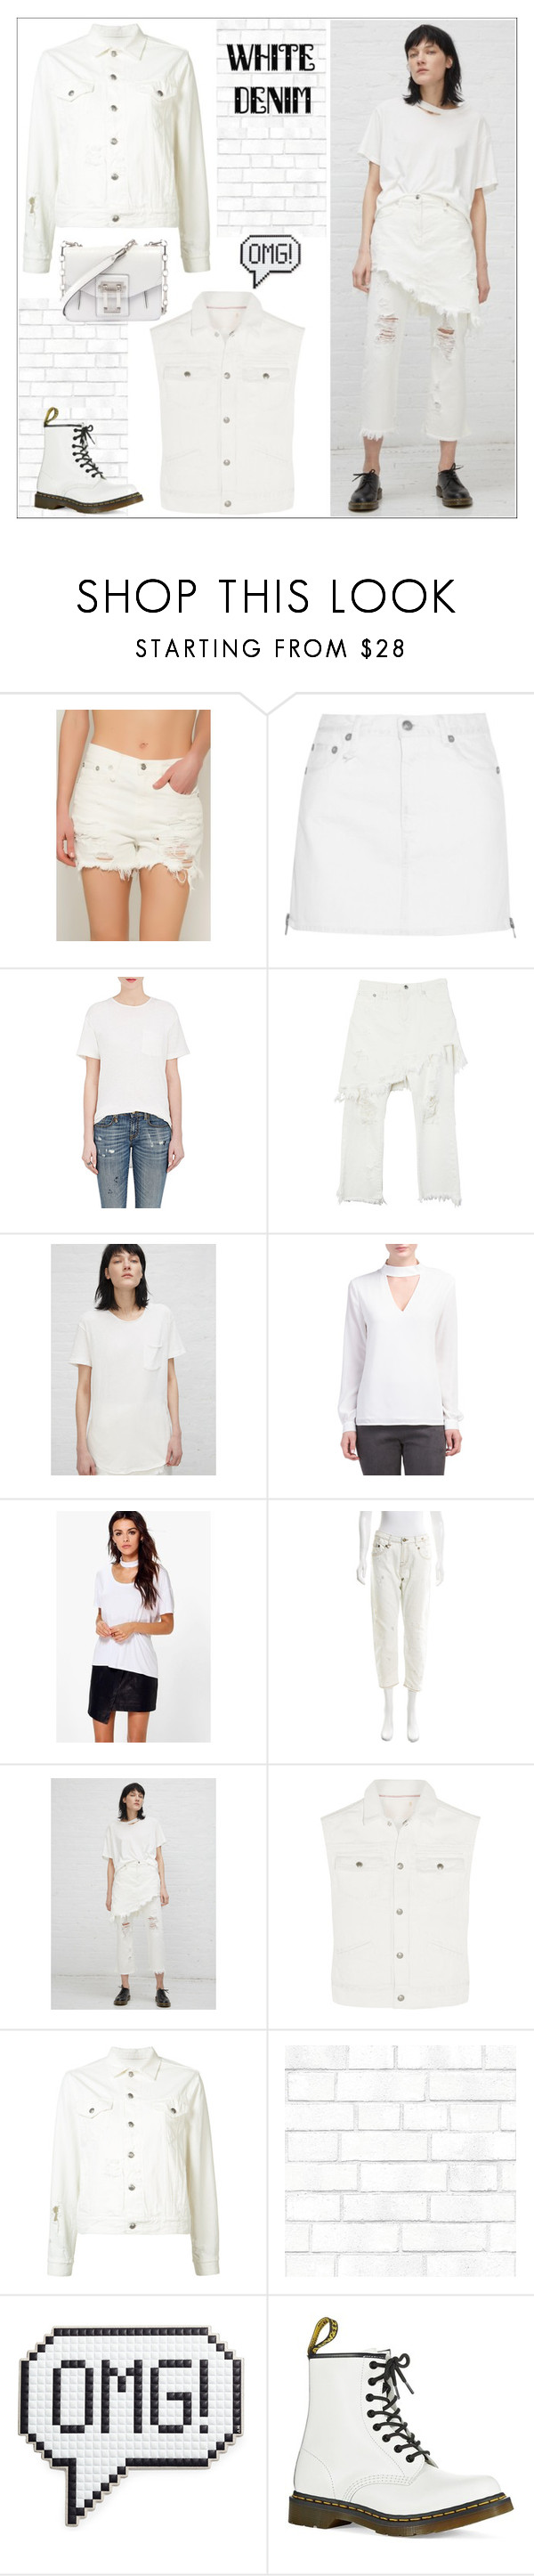 """White Denim, Head to Toe"" by yours-styling-best-friend ❤ liked on Polyvore featuring R13, Boohoo, Tempaper, Anya Hindmarch, Dr. Martens and Proenza Schouler"